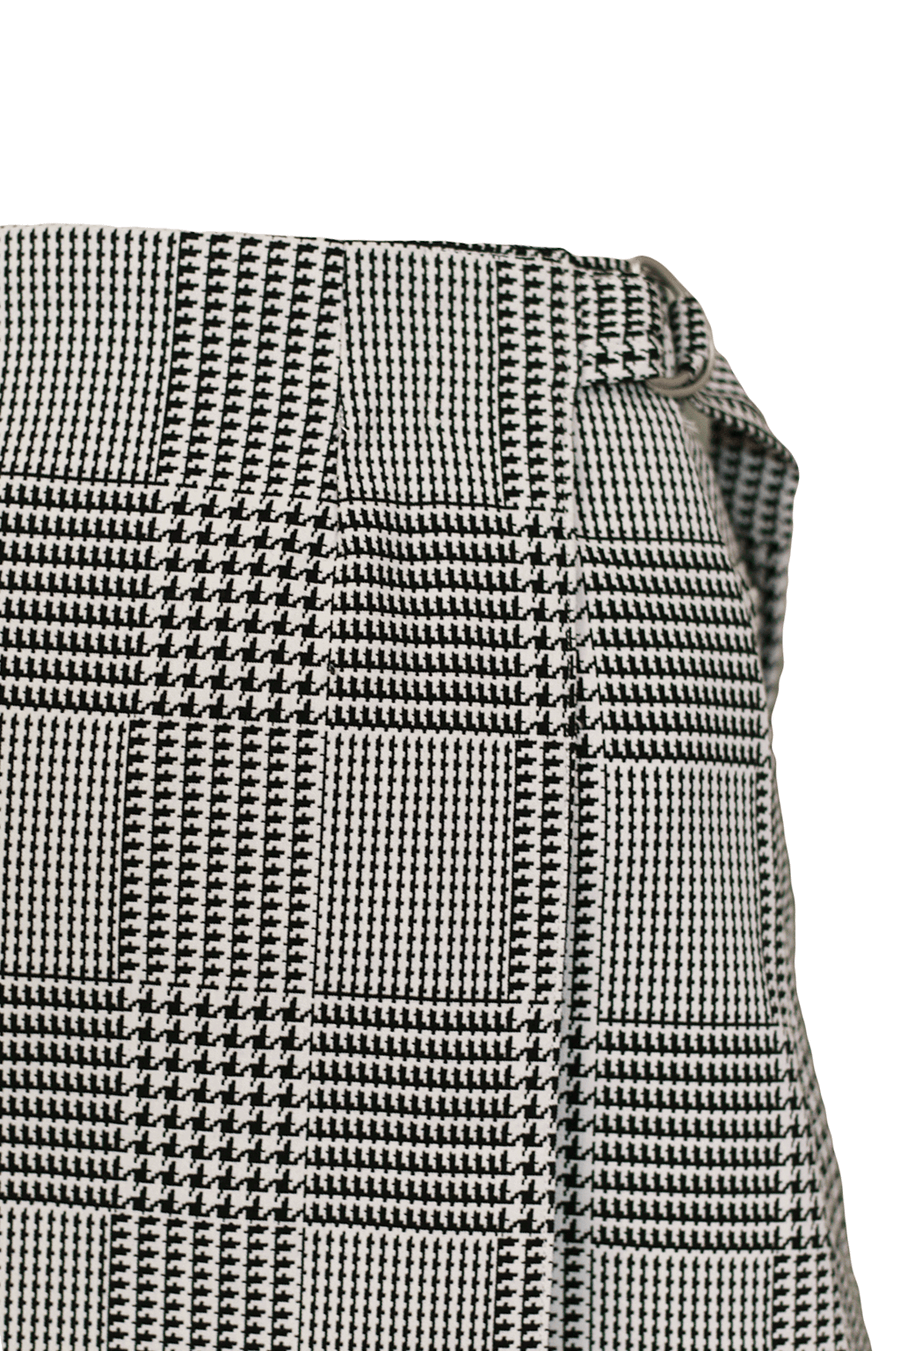 Wrap Skirt in Houndstooth Print